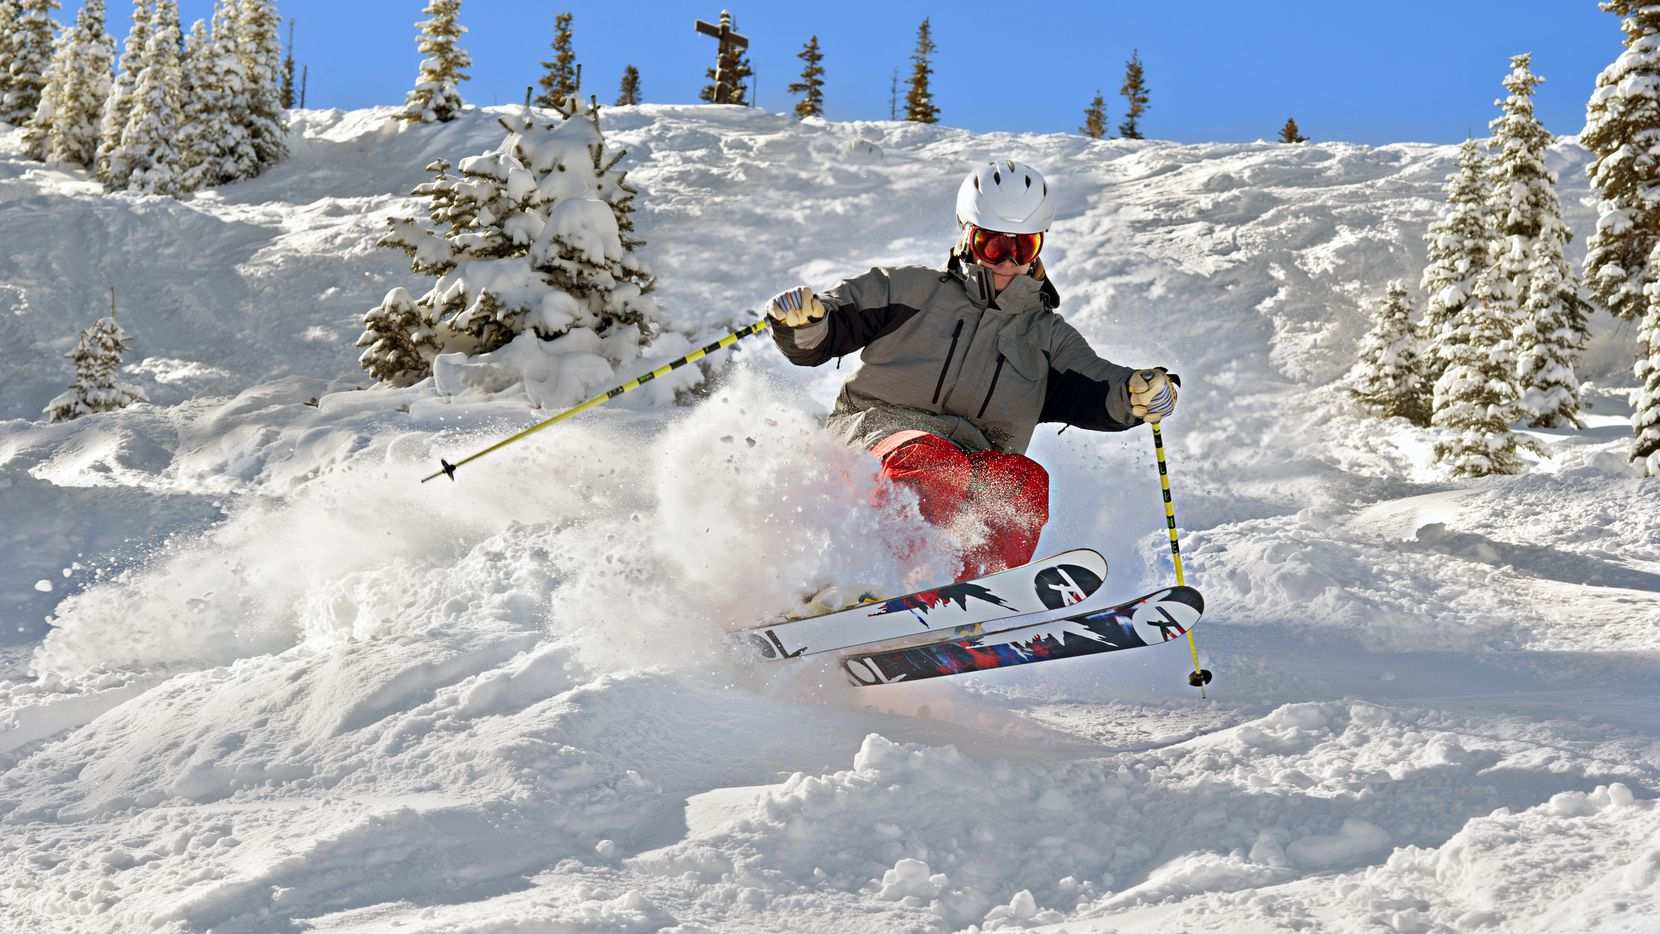 Telluride offers thrilling ski runs as well as more laid-back activities.